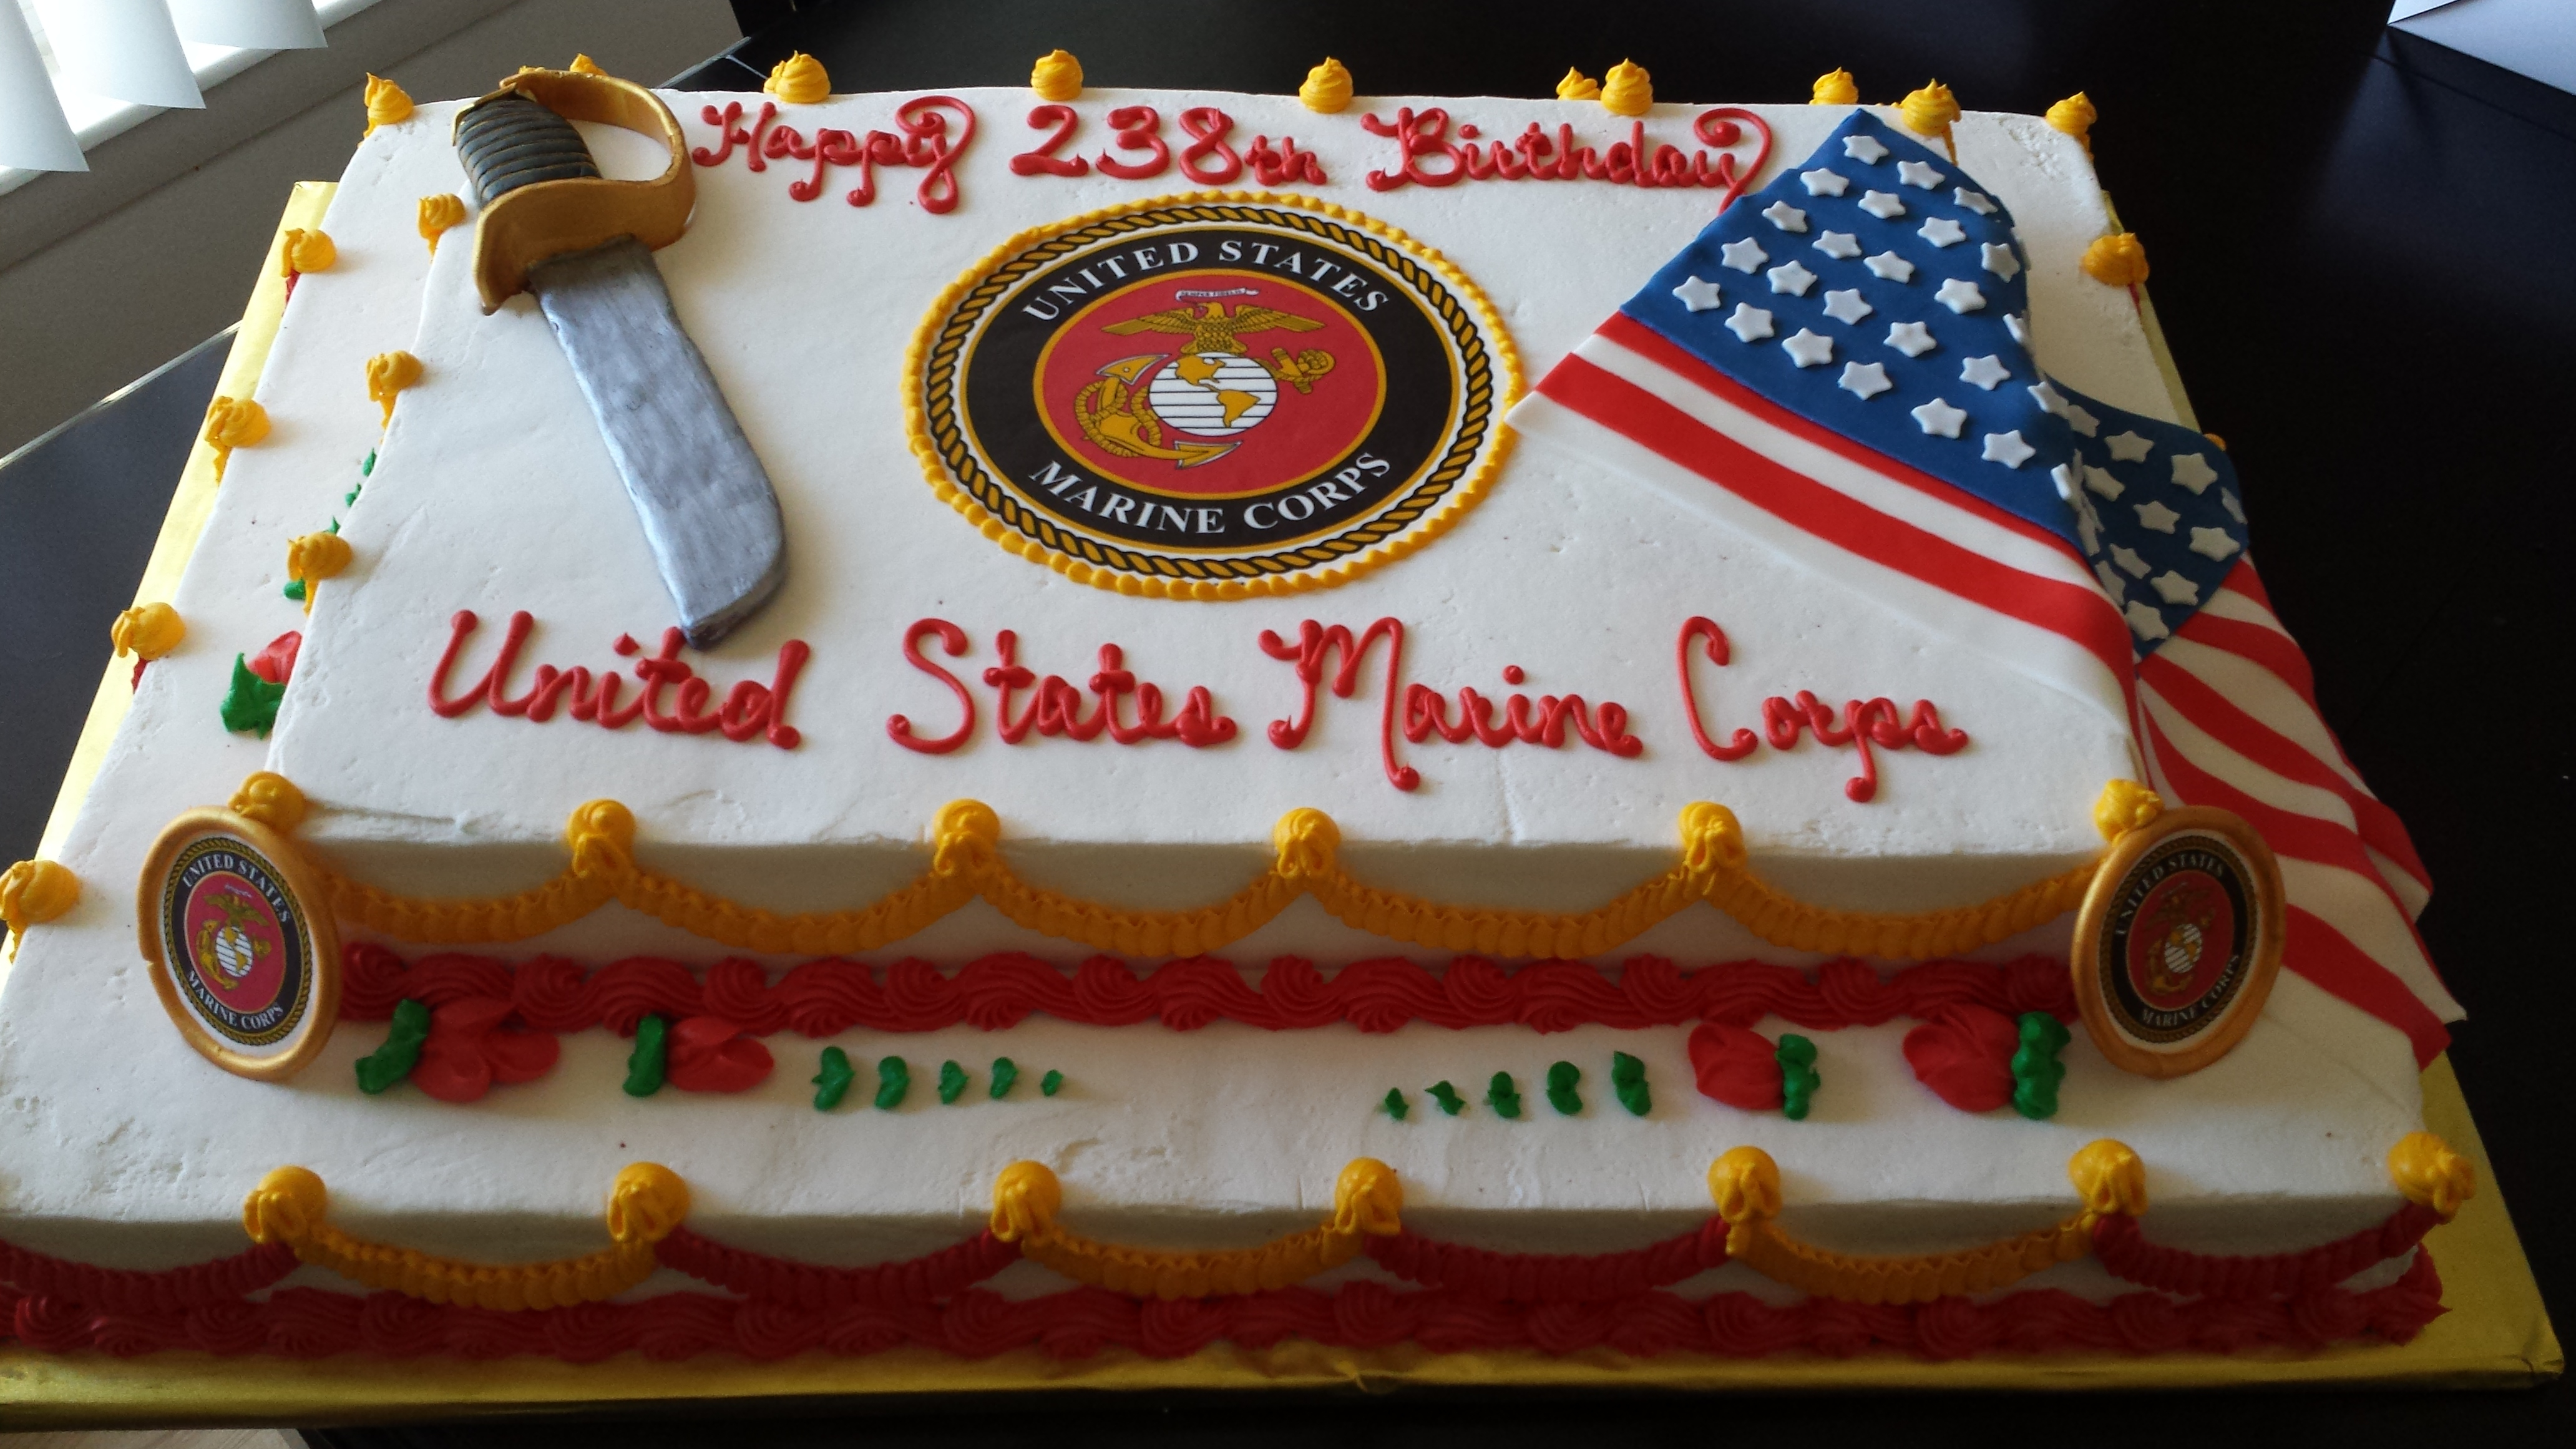 Marine Corps 238th Birthday Cakecentral